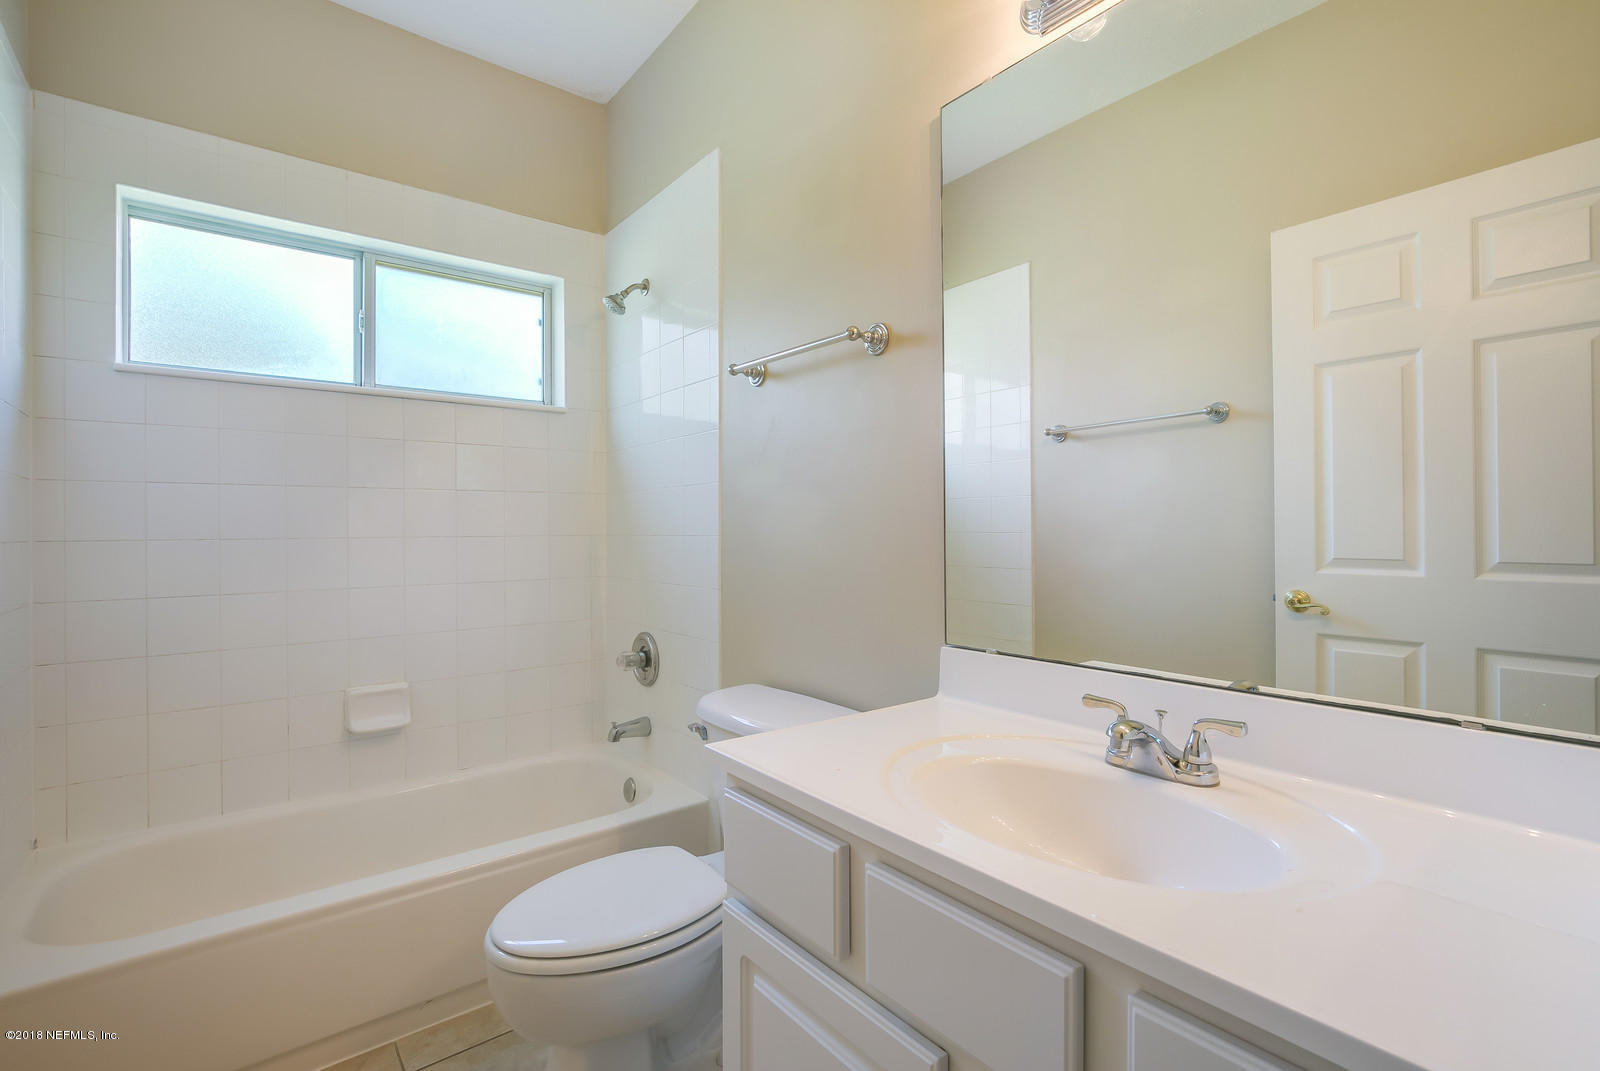 4341 BOAT CLUB, JACKSONVILLE, FLORIDA 32277, 4 Bedrooms Bedrooms, ,3 BathroomsBathrooms,Residential - single family,For sale,BOAT CLUB,947349